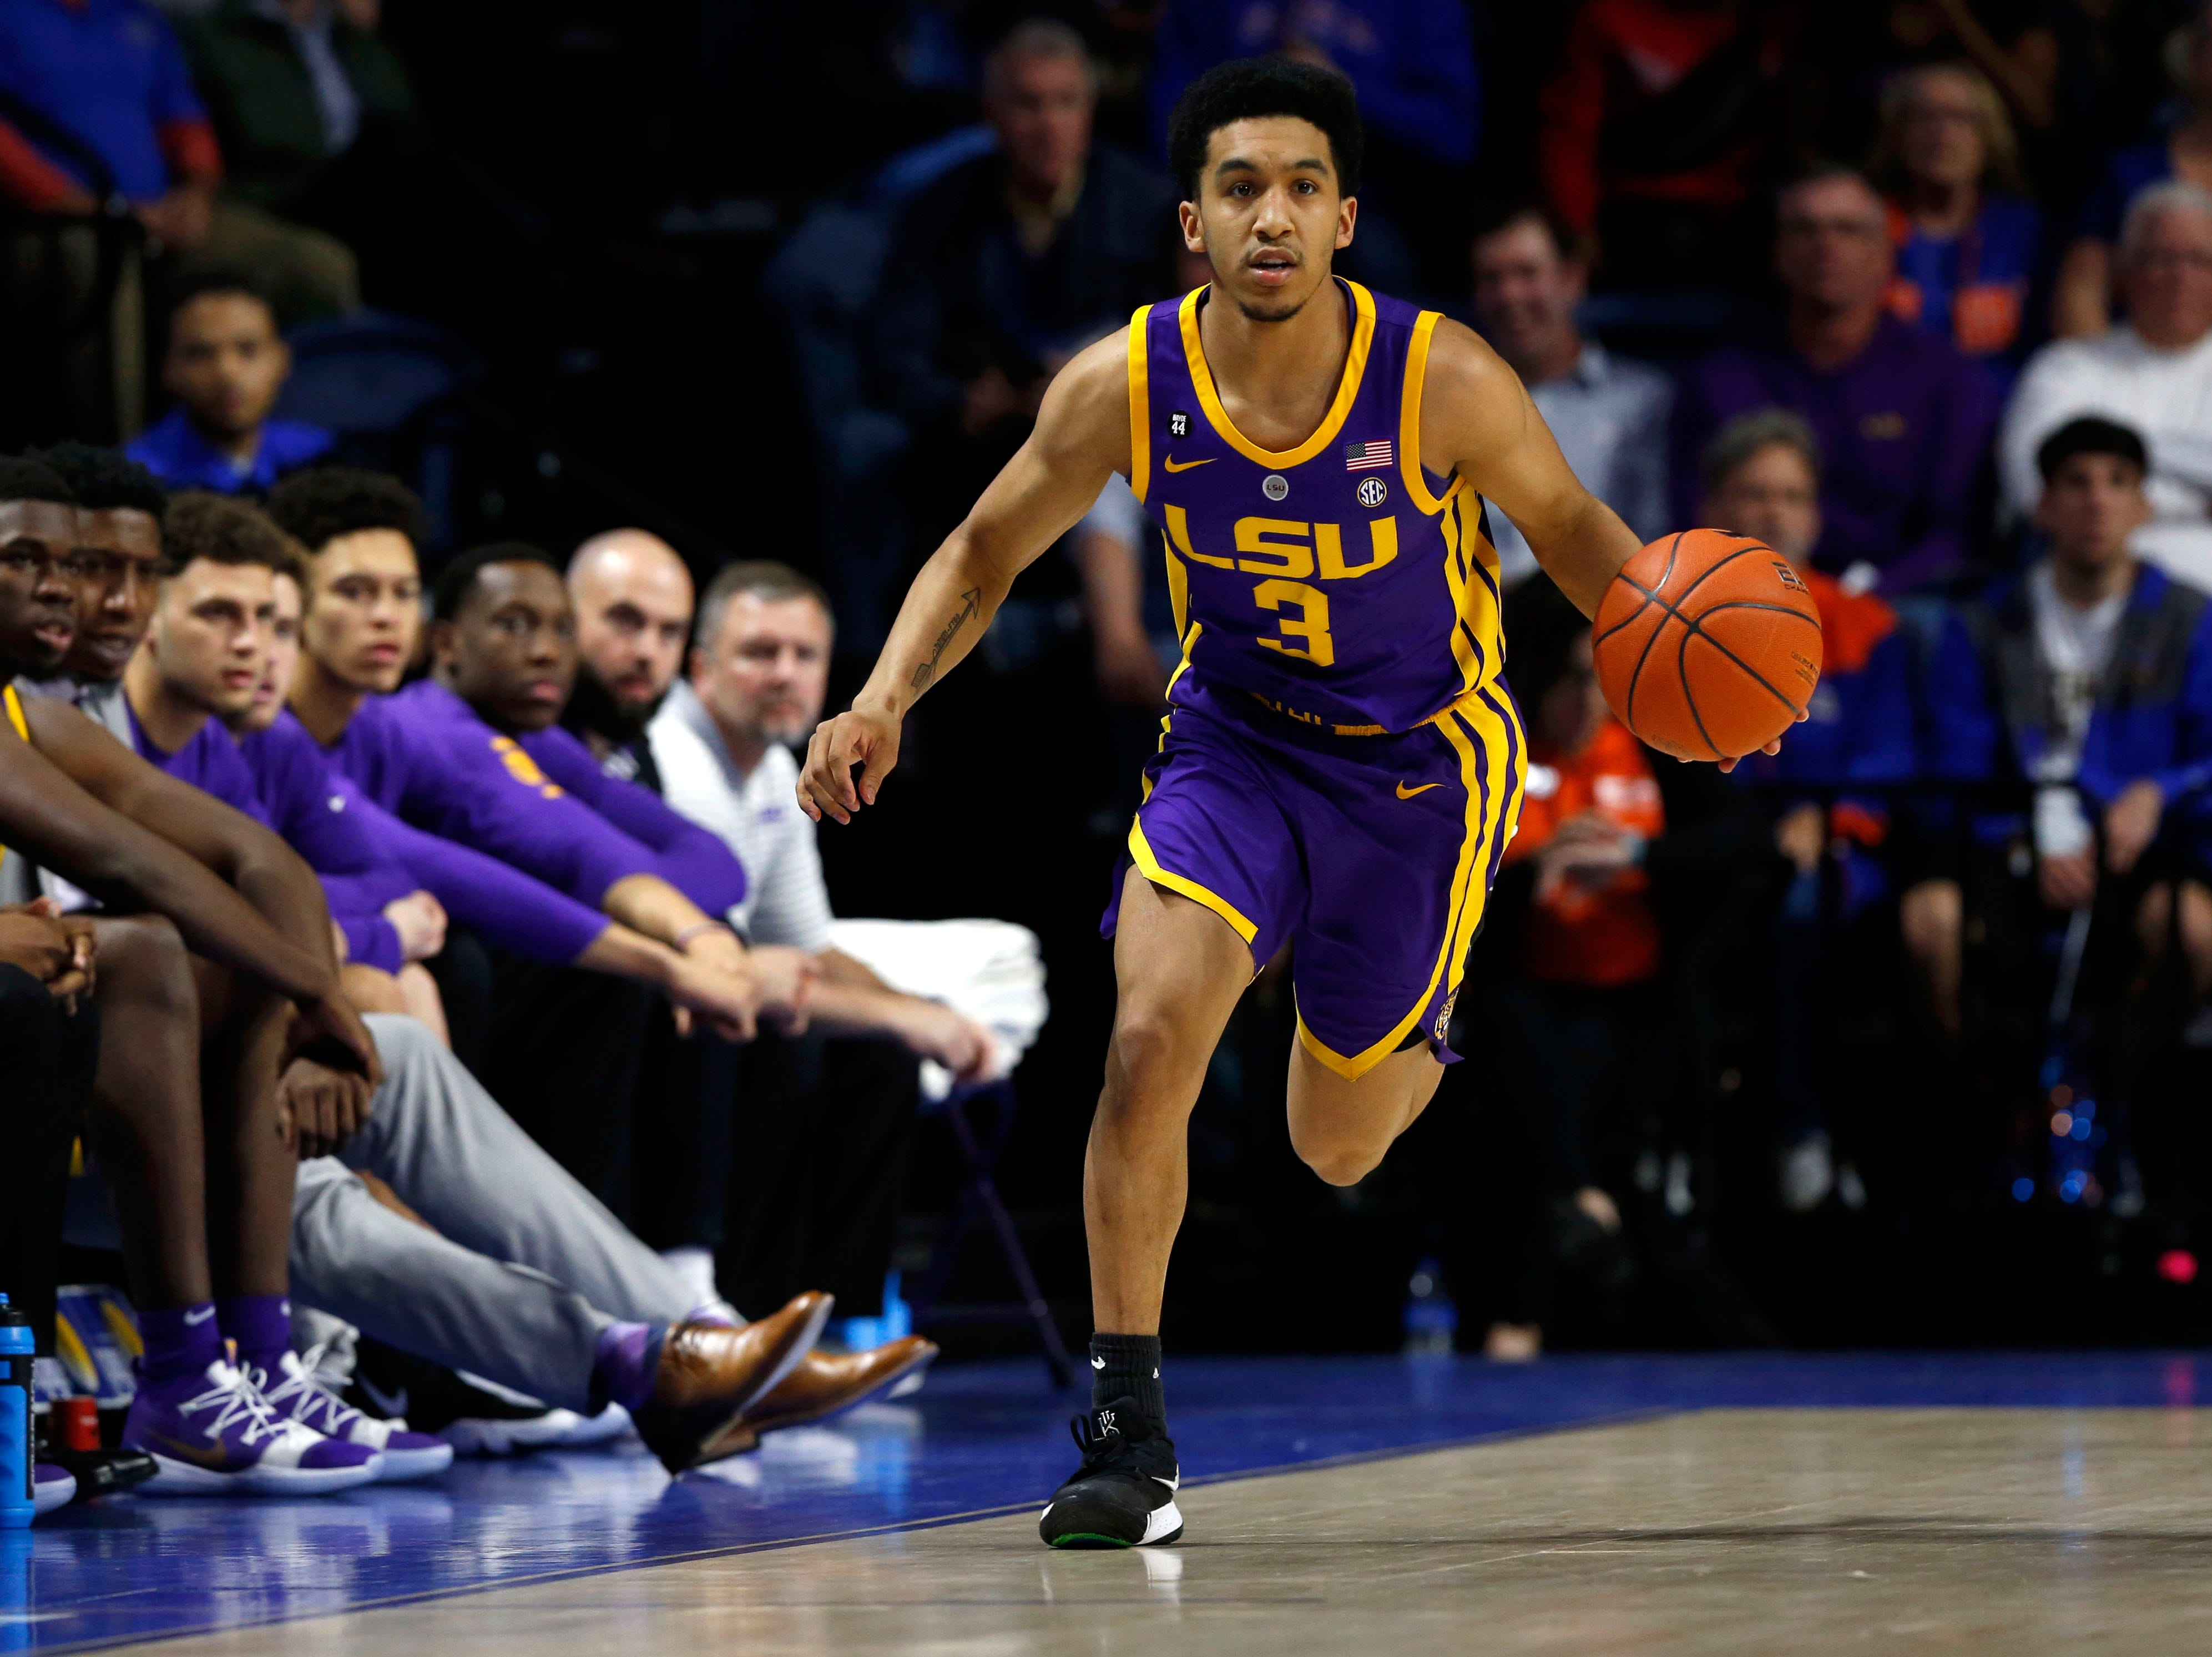 Mar 6, 2019; Gainesville, FL, USA;LSU Tigers guard Tremont Waters (3) dribbles up court against the Florida Gators during the first half at Exactech Arena. Mandatory Credit: Kim Klement-USA TODAY Sports